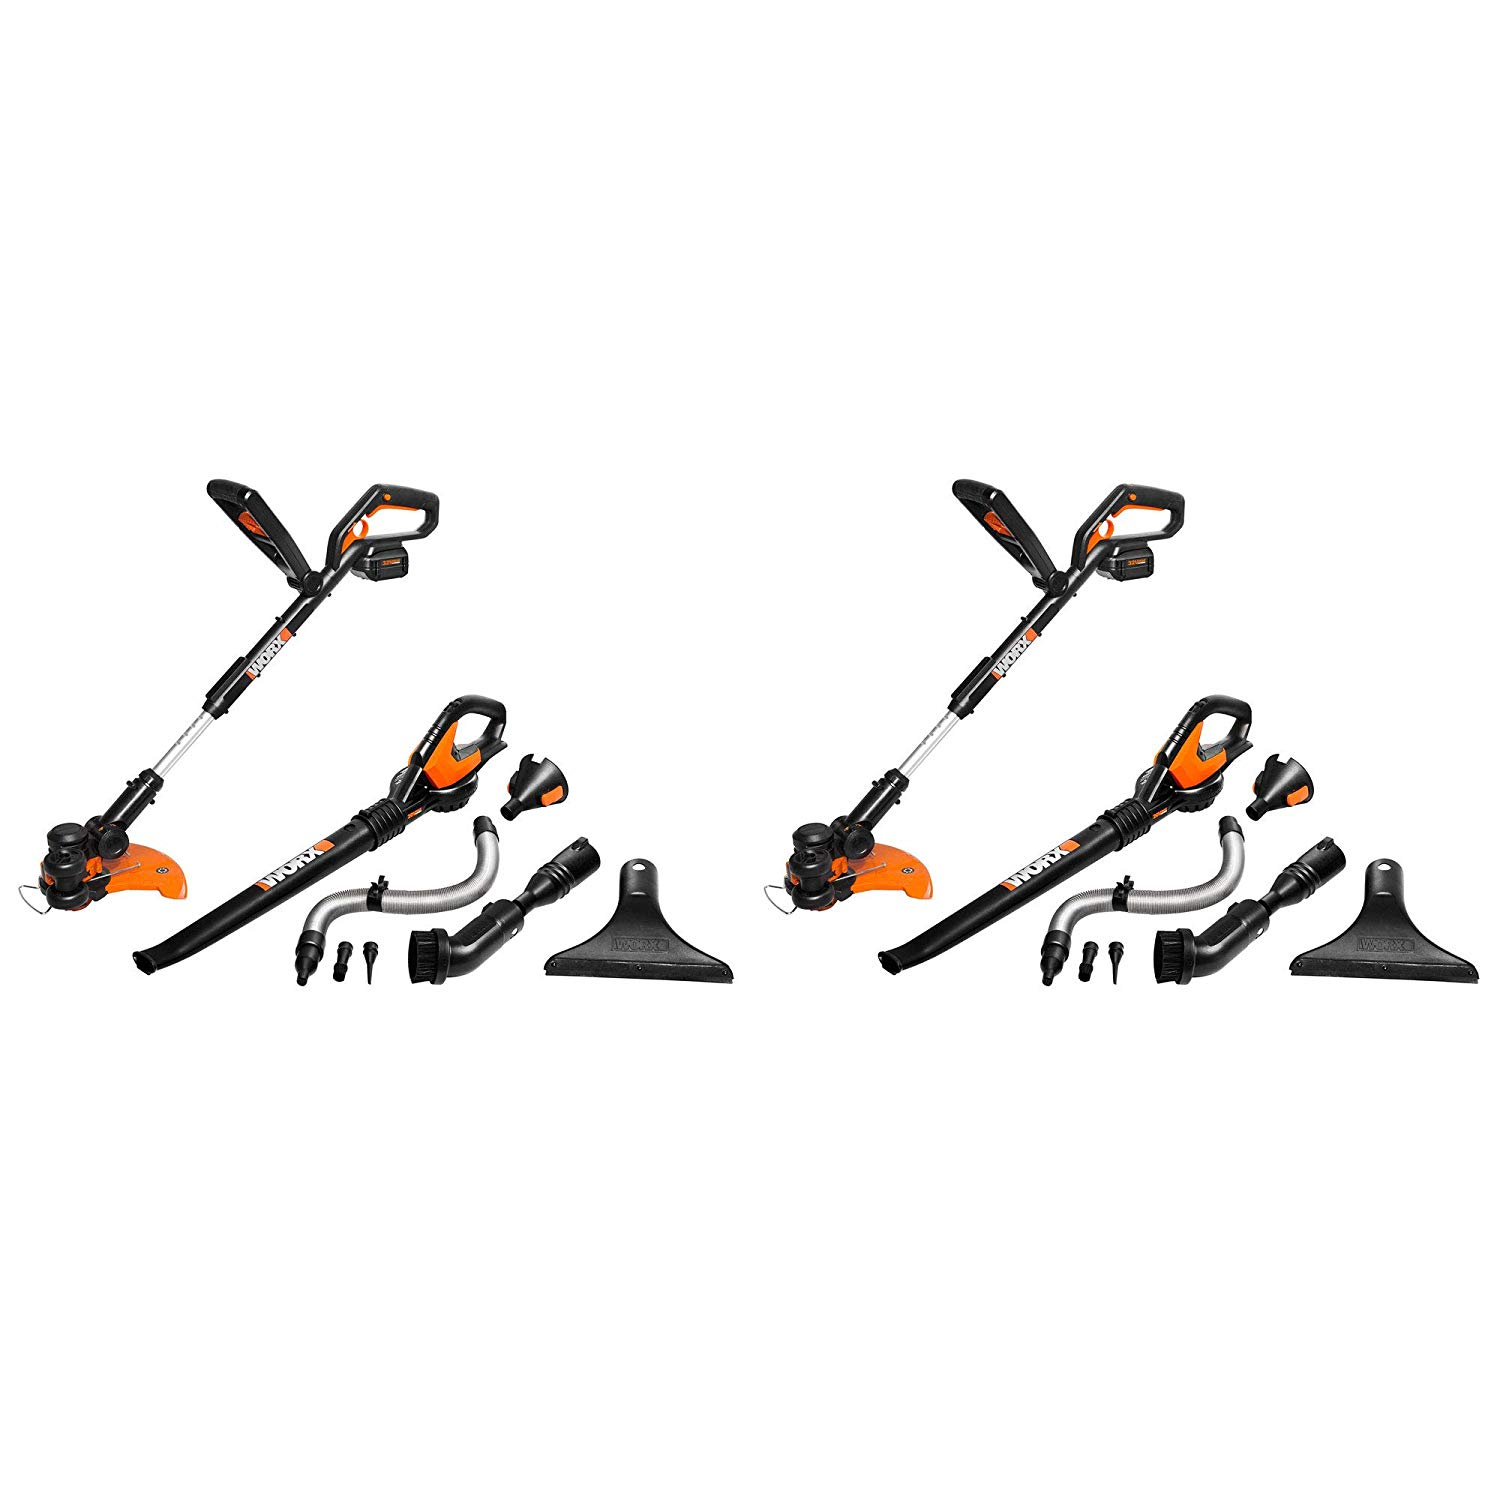 Worx Air 32V Grass Trimmer & Air Blower Cordless Electric Combo Kit (2 Pack)